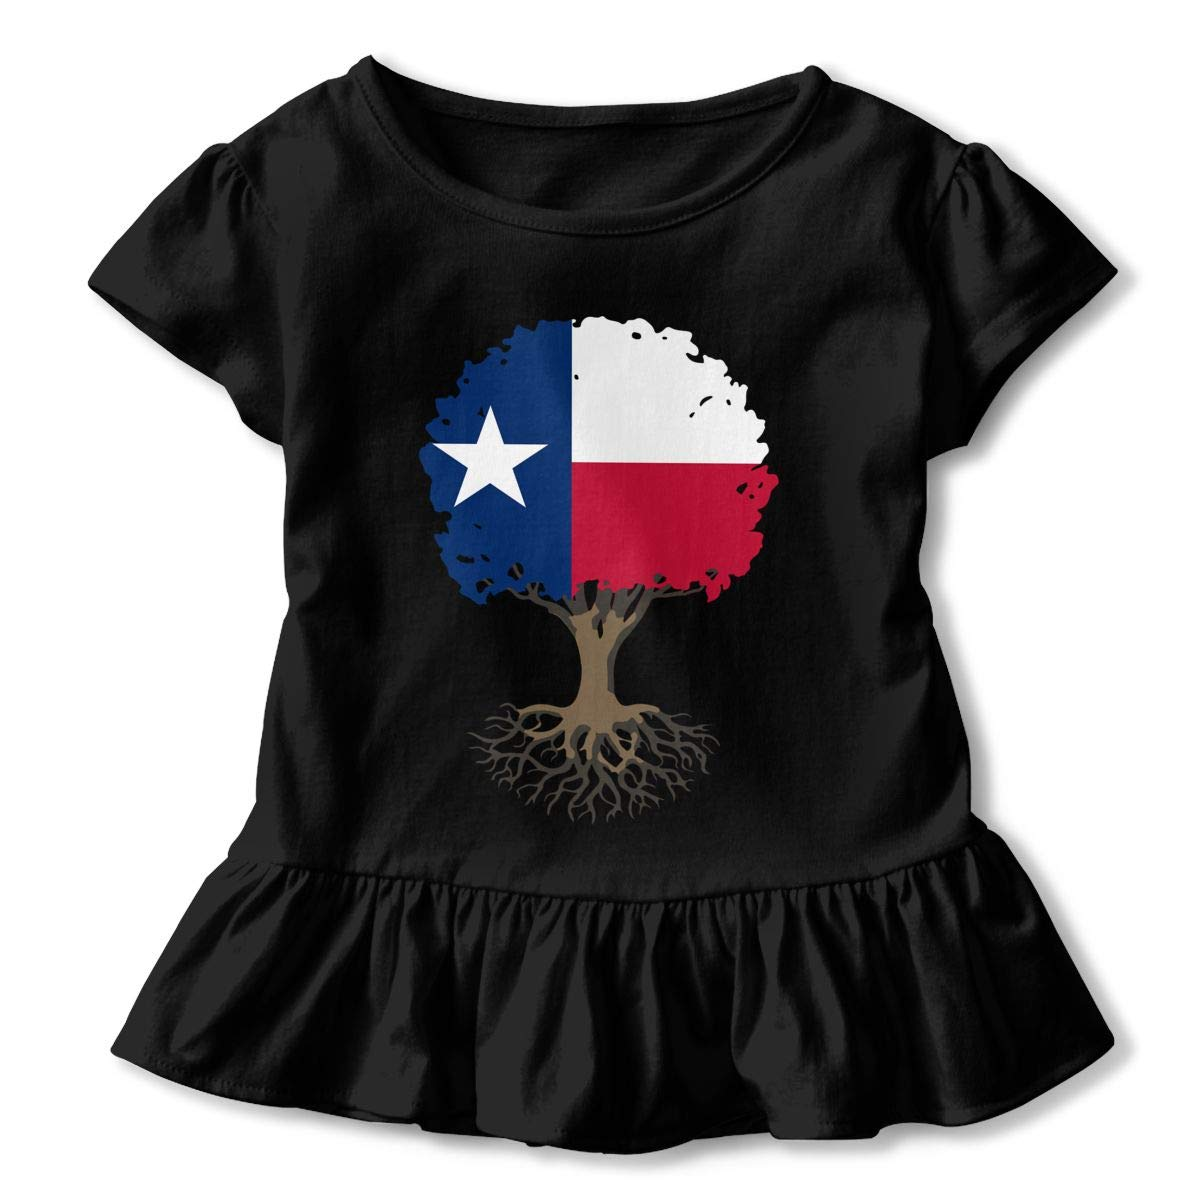 HYBDX9T Little Girls Tree of Life with Texas Flag Funny Short Sleeve Cotton T Shirts Basic Tops Tee Clothes